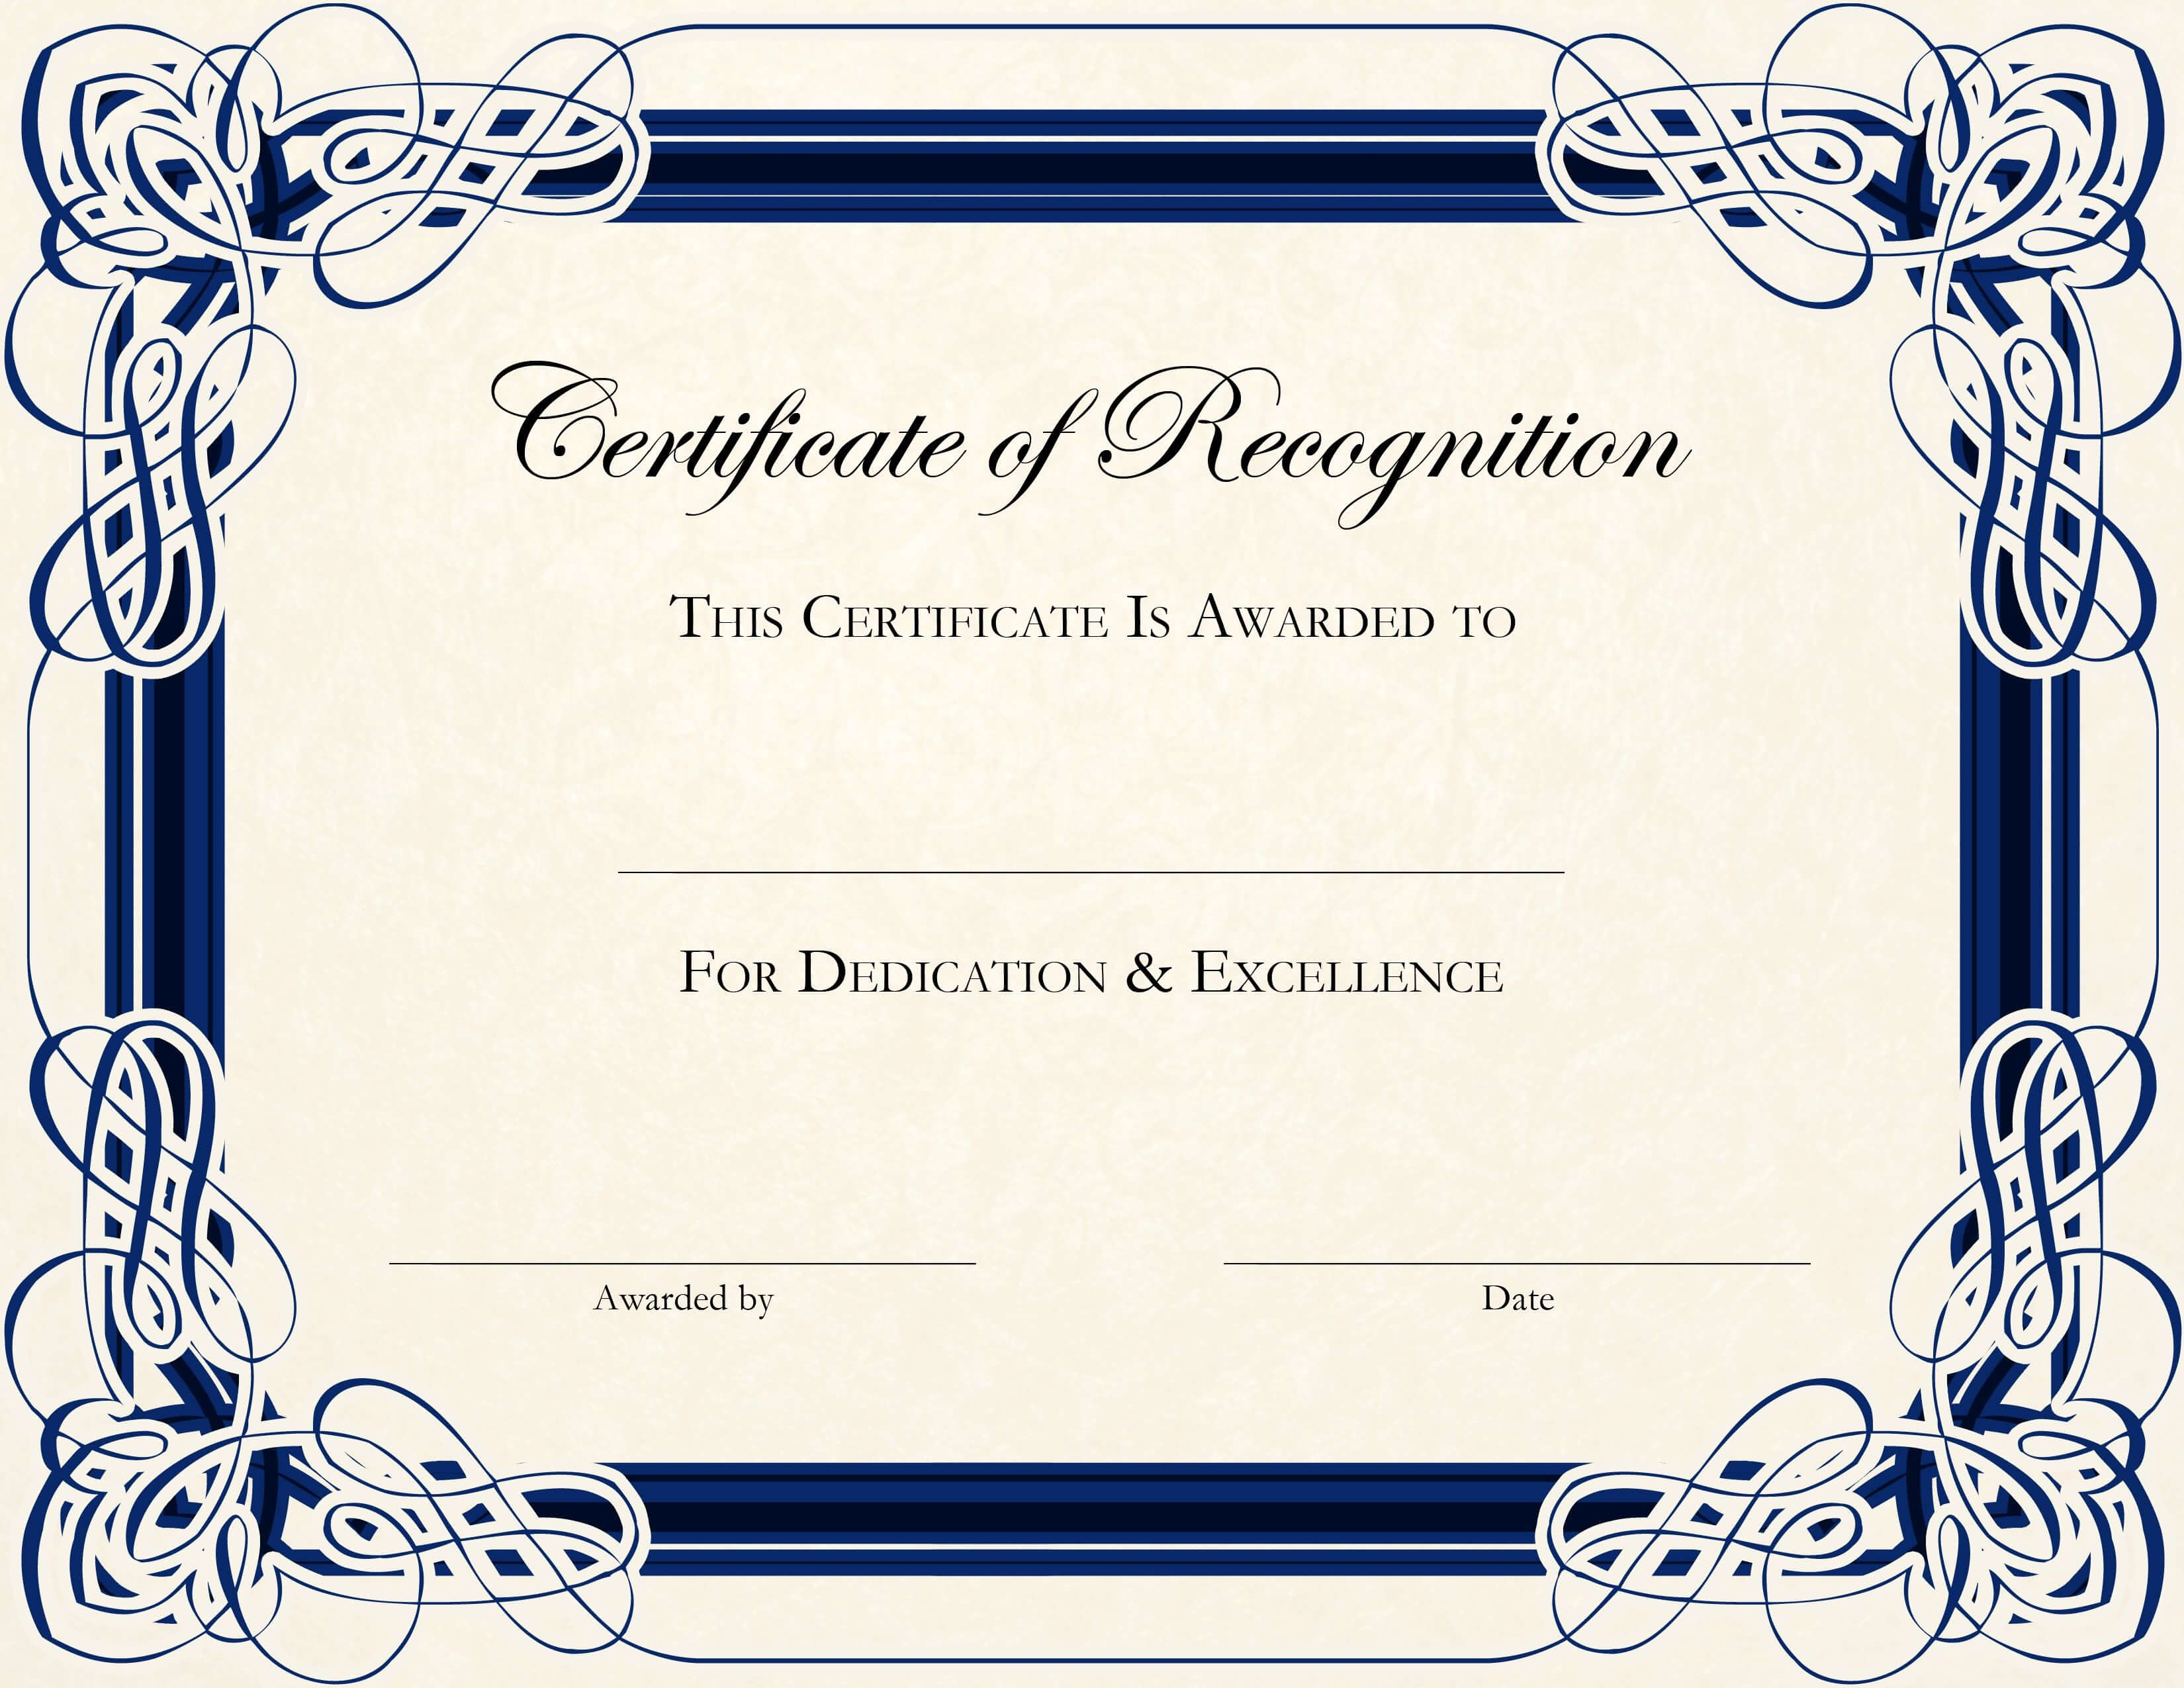 Free Printable Certificate Templates For Teachers Intended For Template For Certificate Of Award